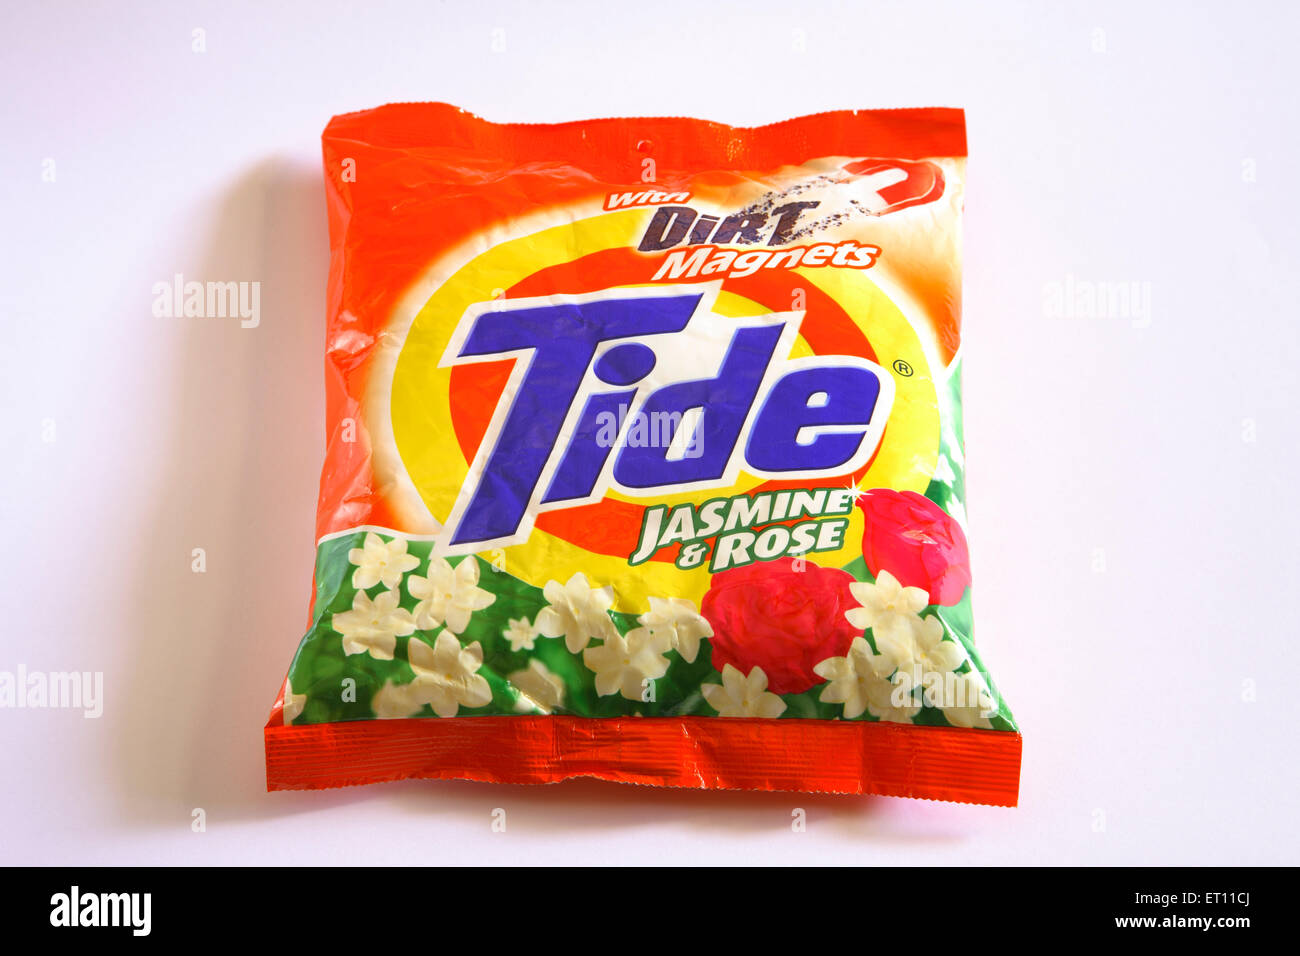 Detergent powder Tide packet on white background - Stock Image